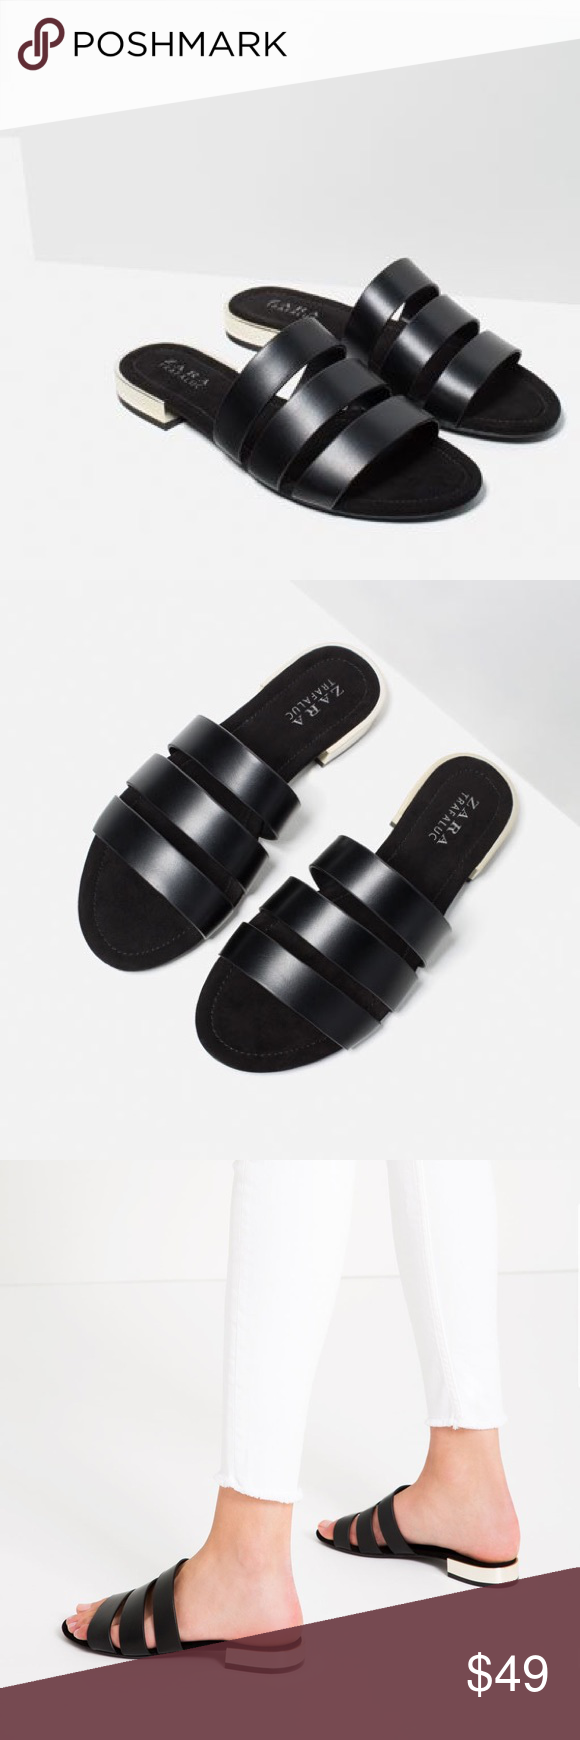 95ae9cb40613 Zara black flat sandal with metal heel Chic versatile slide sandals.. euro  size 41 Zara Shoes